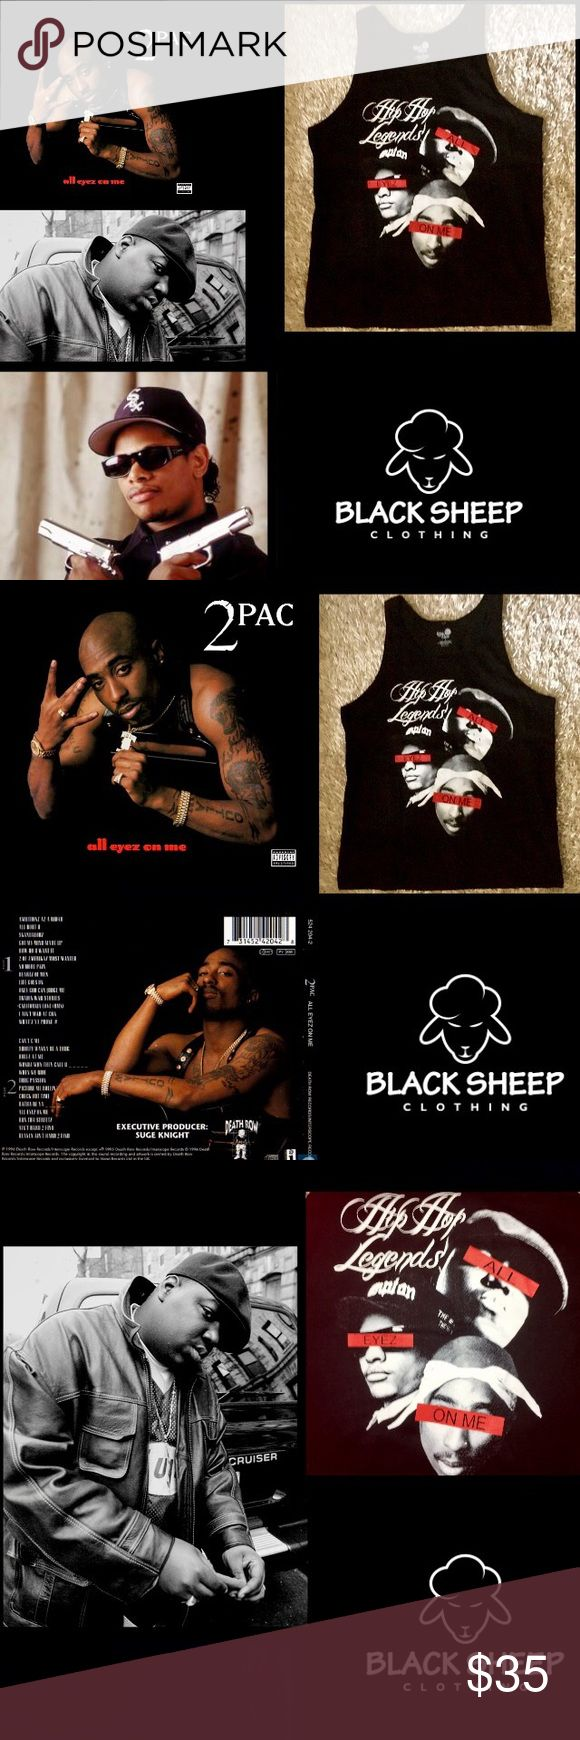 """🦋2PAC•Eazy E•Biggie•Legends of Hip Hop Rap Tank🎶 The Life/Legacy of2Pac•All Eyez On Me Movie released 6/16/17would have been 2PAC46thBDayAll 👀 2PACS 4th&last album 2/13/96 won""""97SoulTrain R&B/SoulRap AlbumYear 2Pac MTV12/95 That's how I feelThe police watching me,Feds.females want2charge me w/false charges,sue me,jealous homeboy Everybody lookin2see what I'mma do Lyrics""""Live my life as a thug til the day I die,Iknow ya watchin,Live my life as a Boss Payer(I know ya got me in the scopes…"""